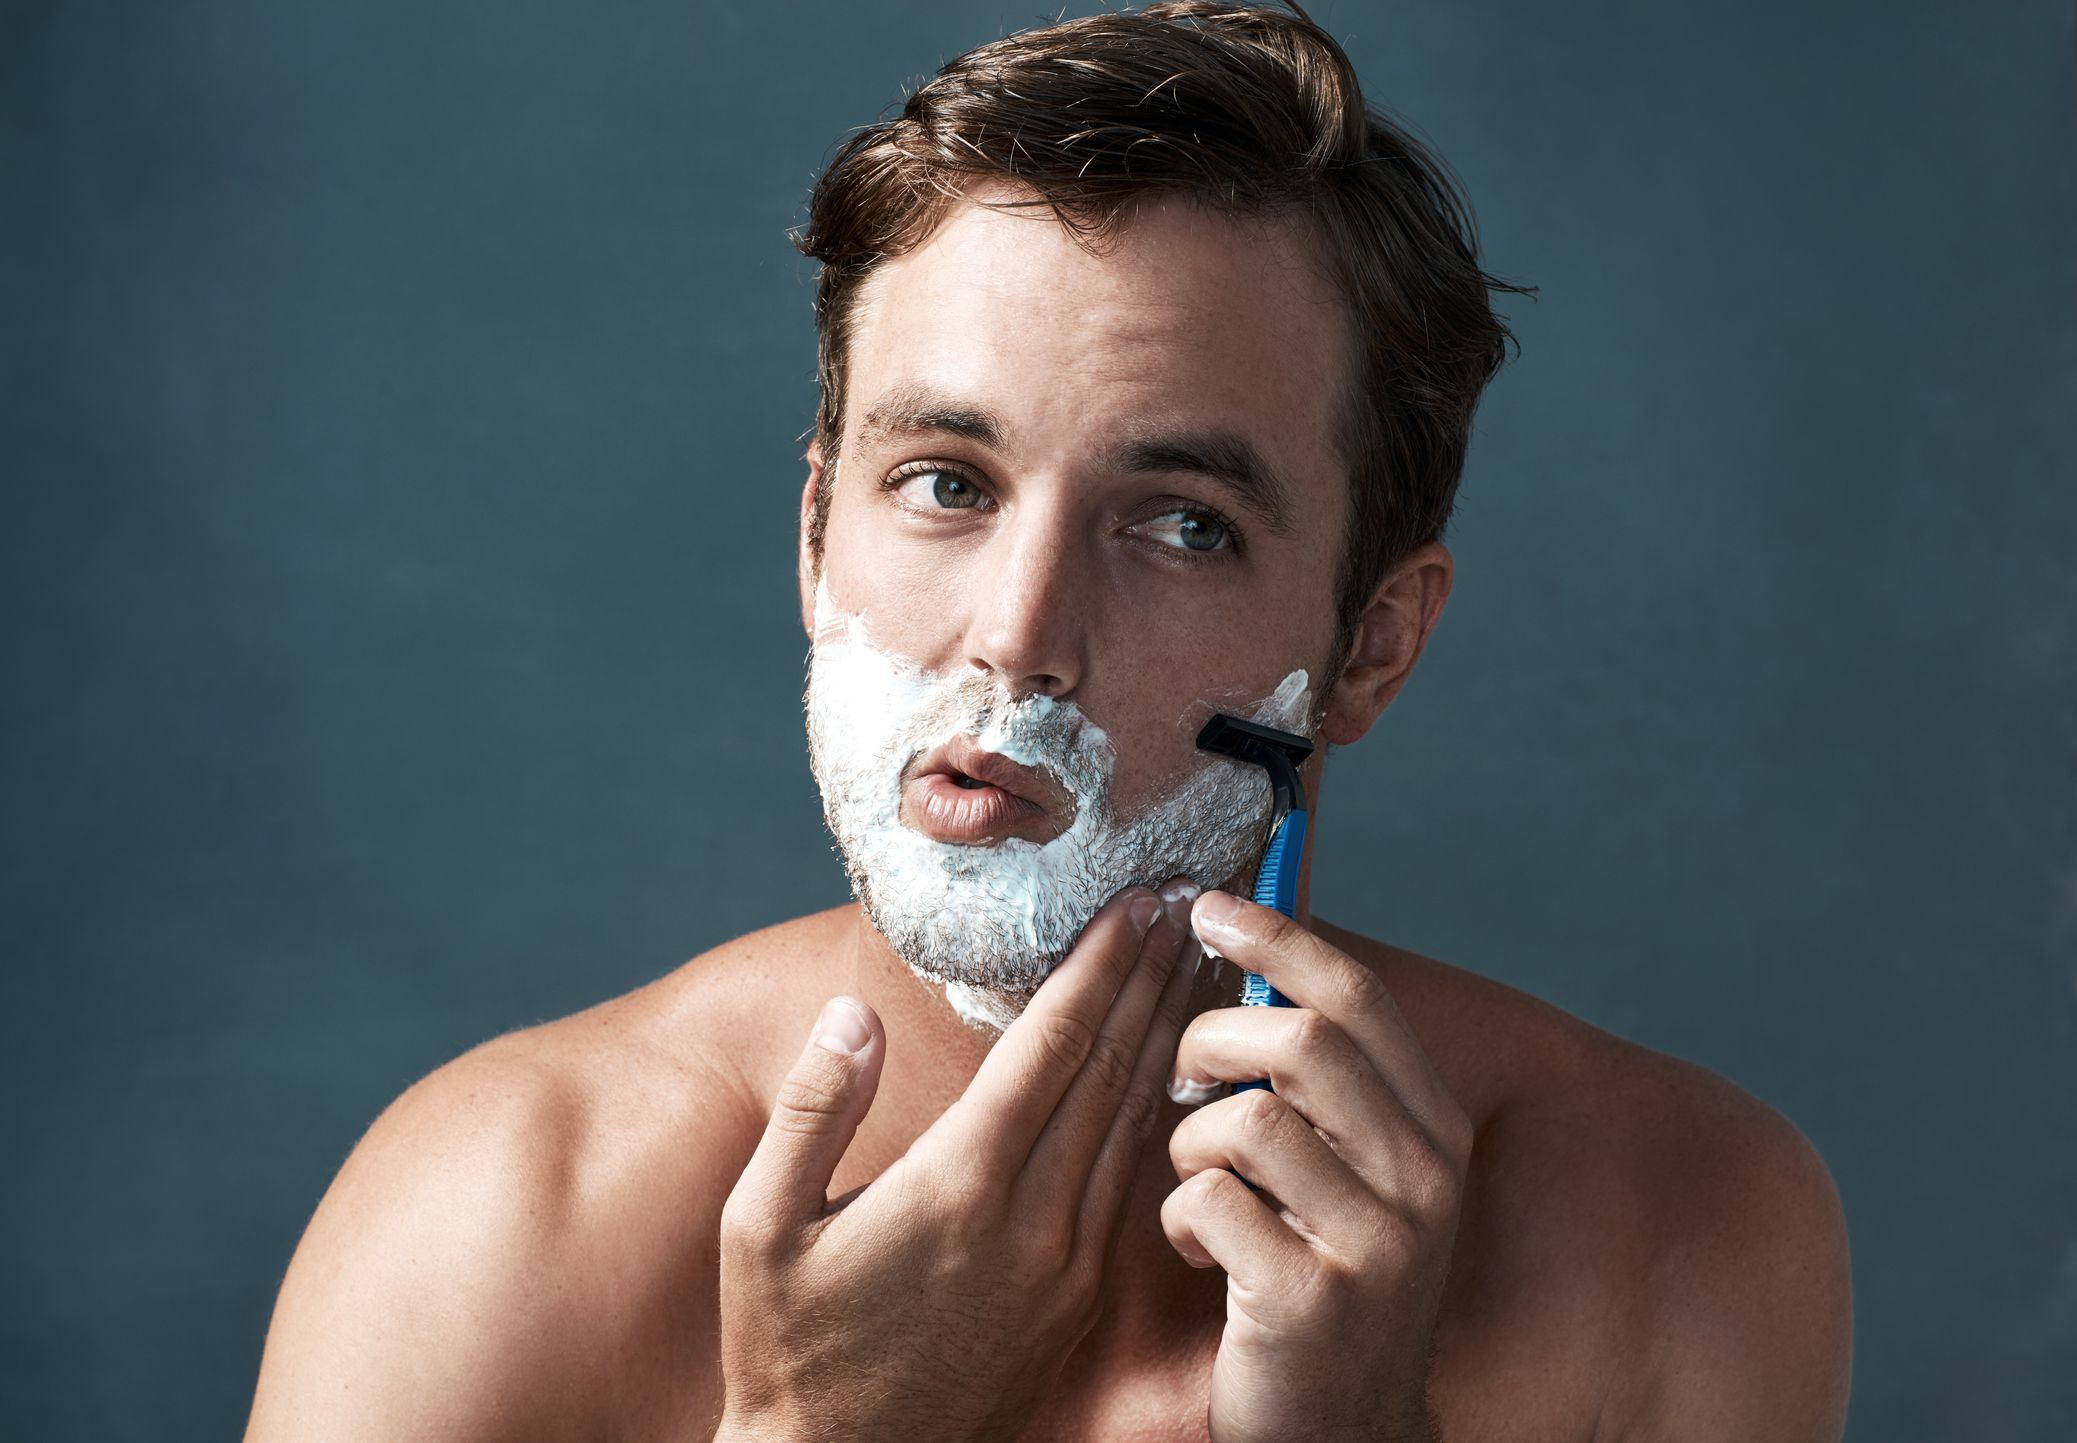 Folliculitis: how to treat ingrown hairs and shaving rash inflammation